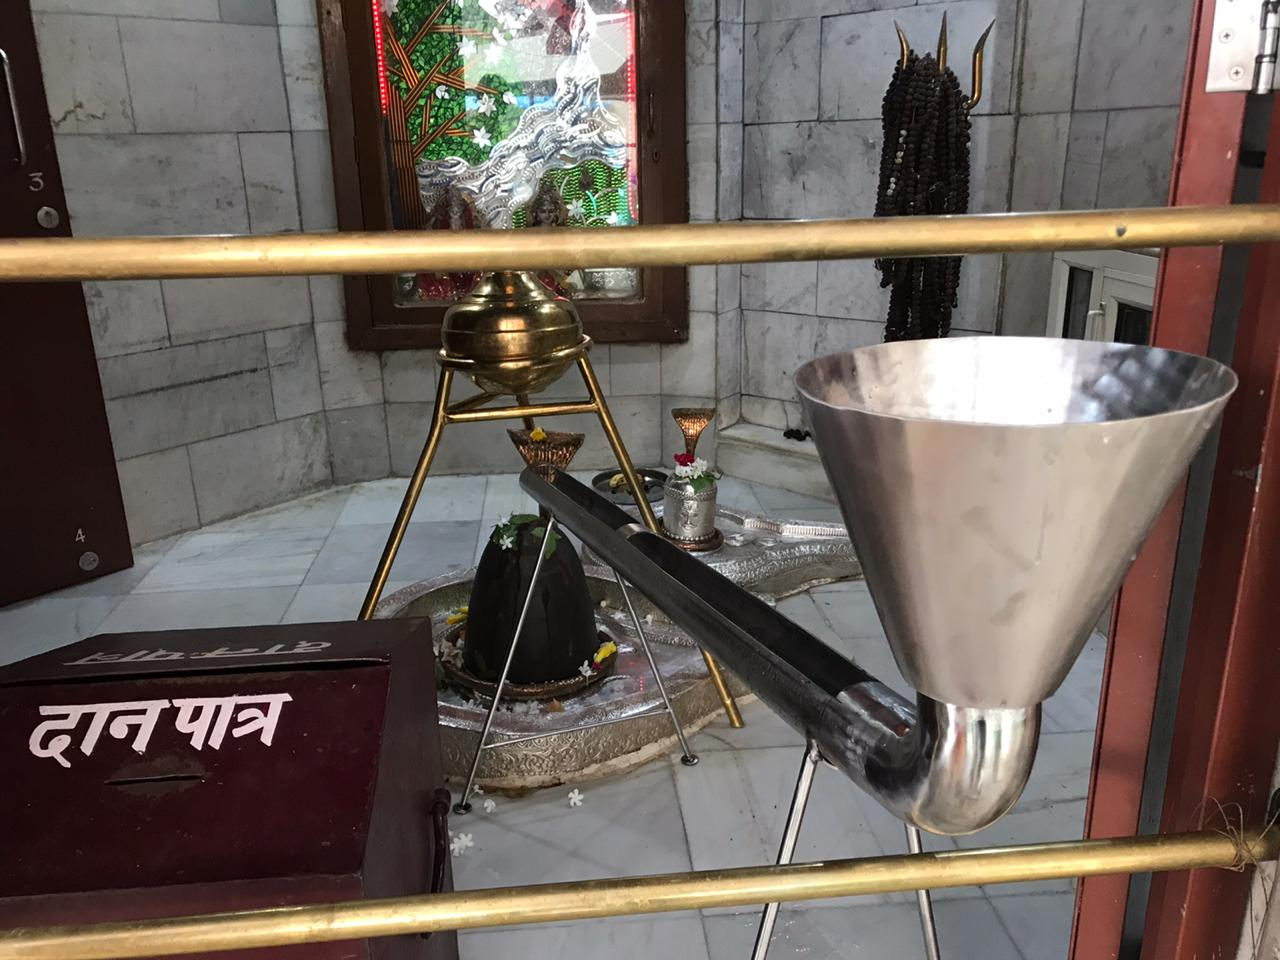 The devotees got the permission to pour the water in Saketri Shiva temple's Linga